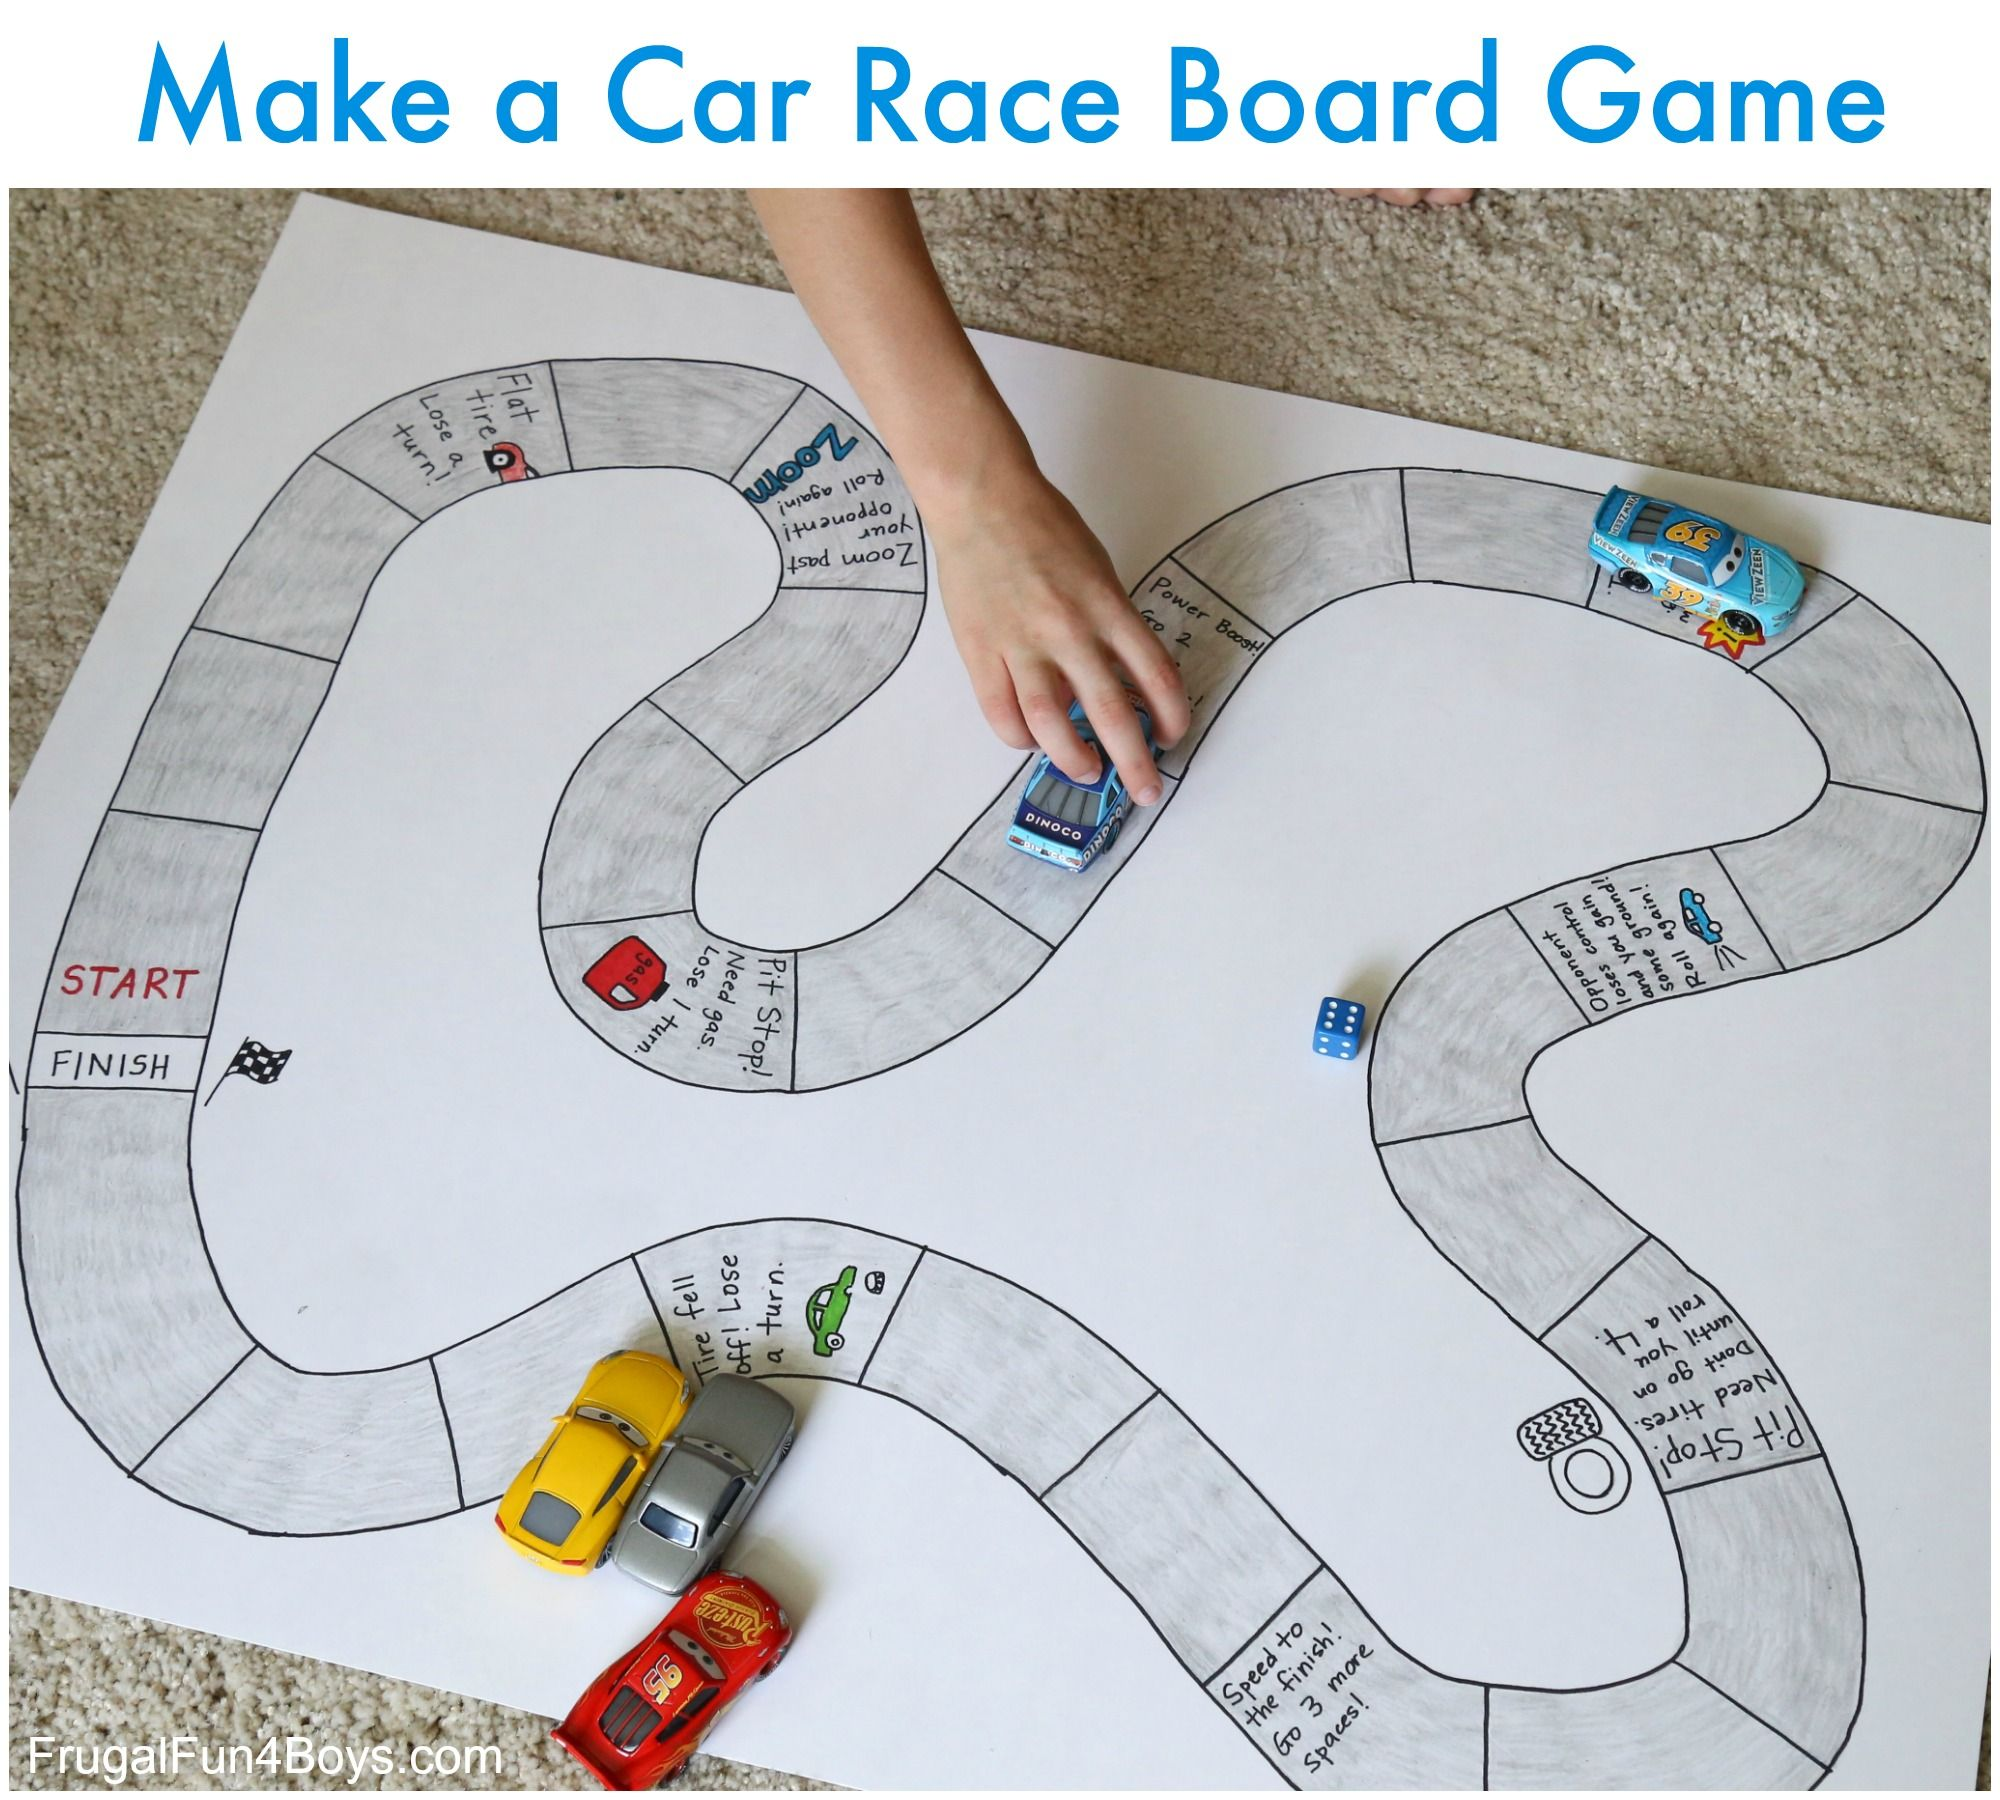 Make Your Own Car Race Board Game | Board games, Homemade board ...